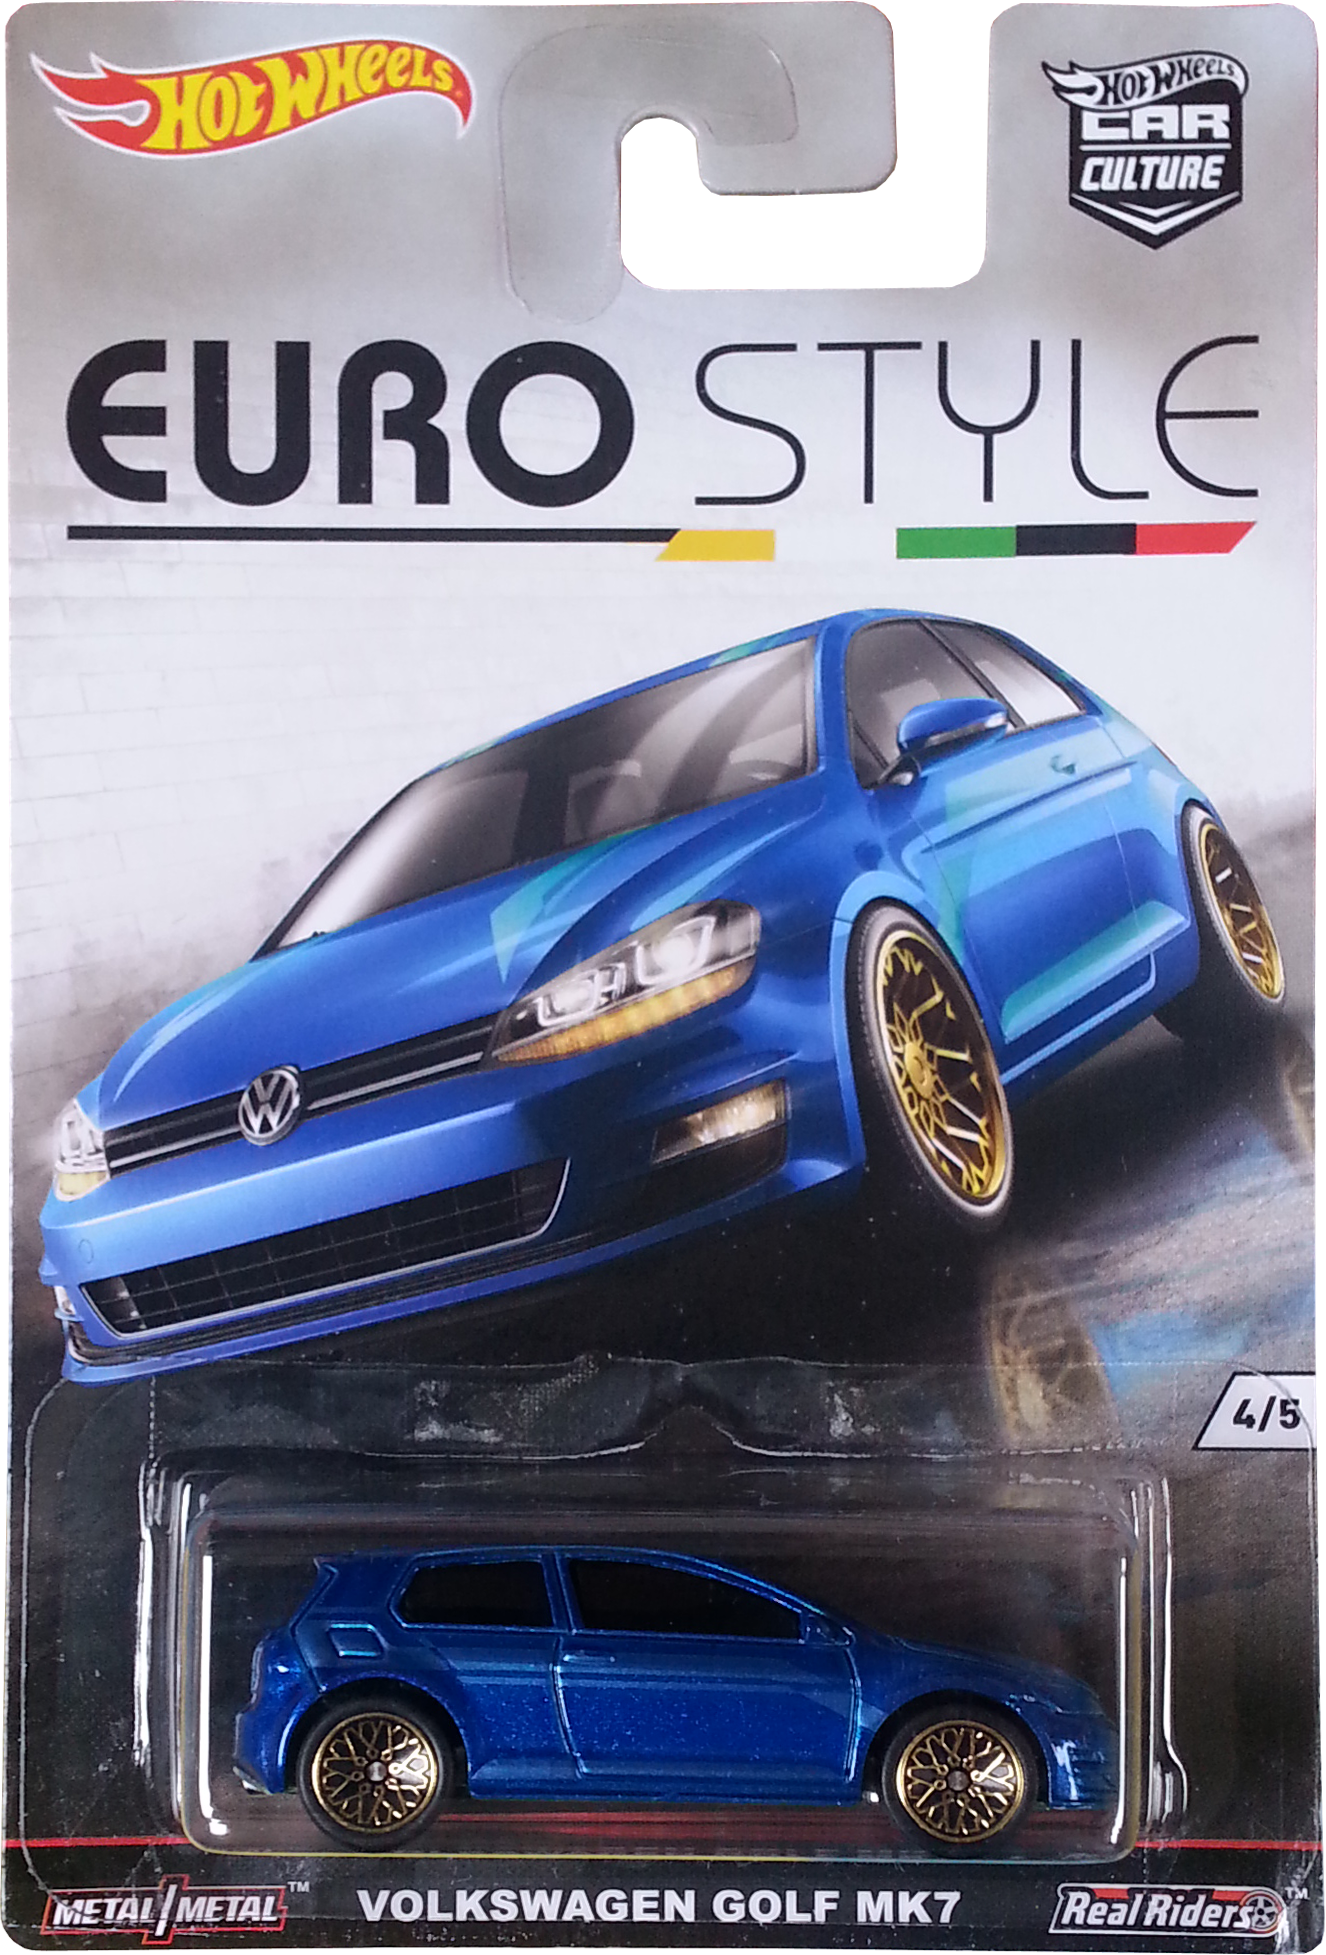 Volkswagen Golf Mk7 Hot Wheels Wiki Fandom Powered By